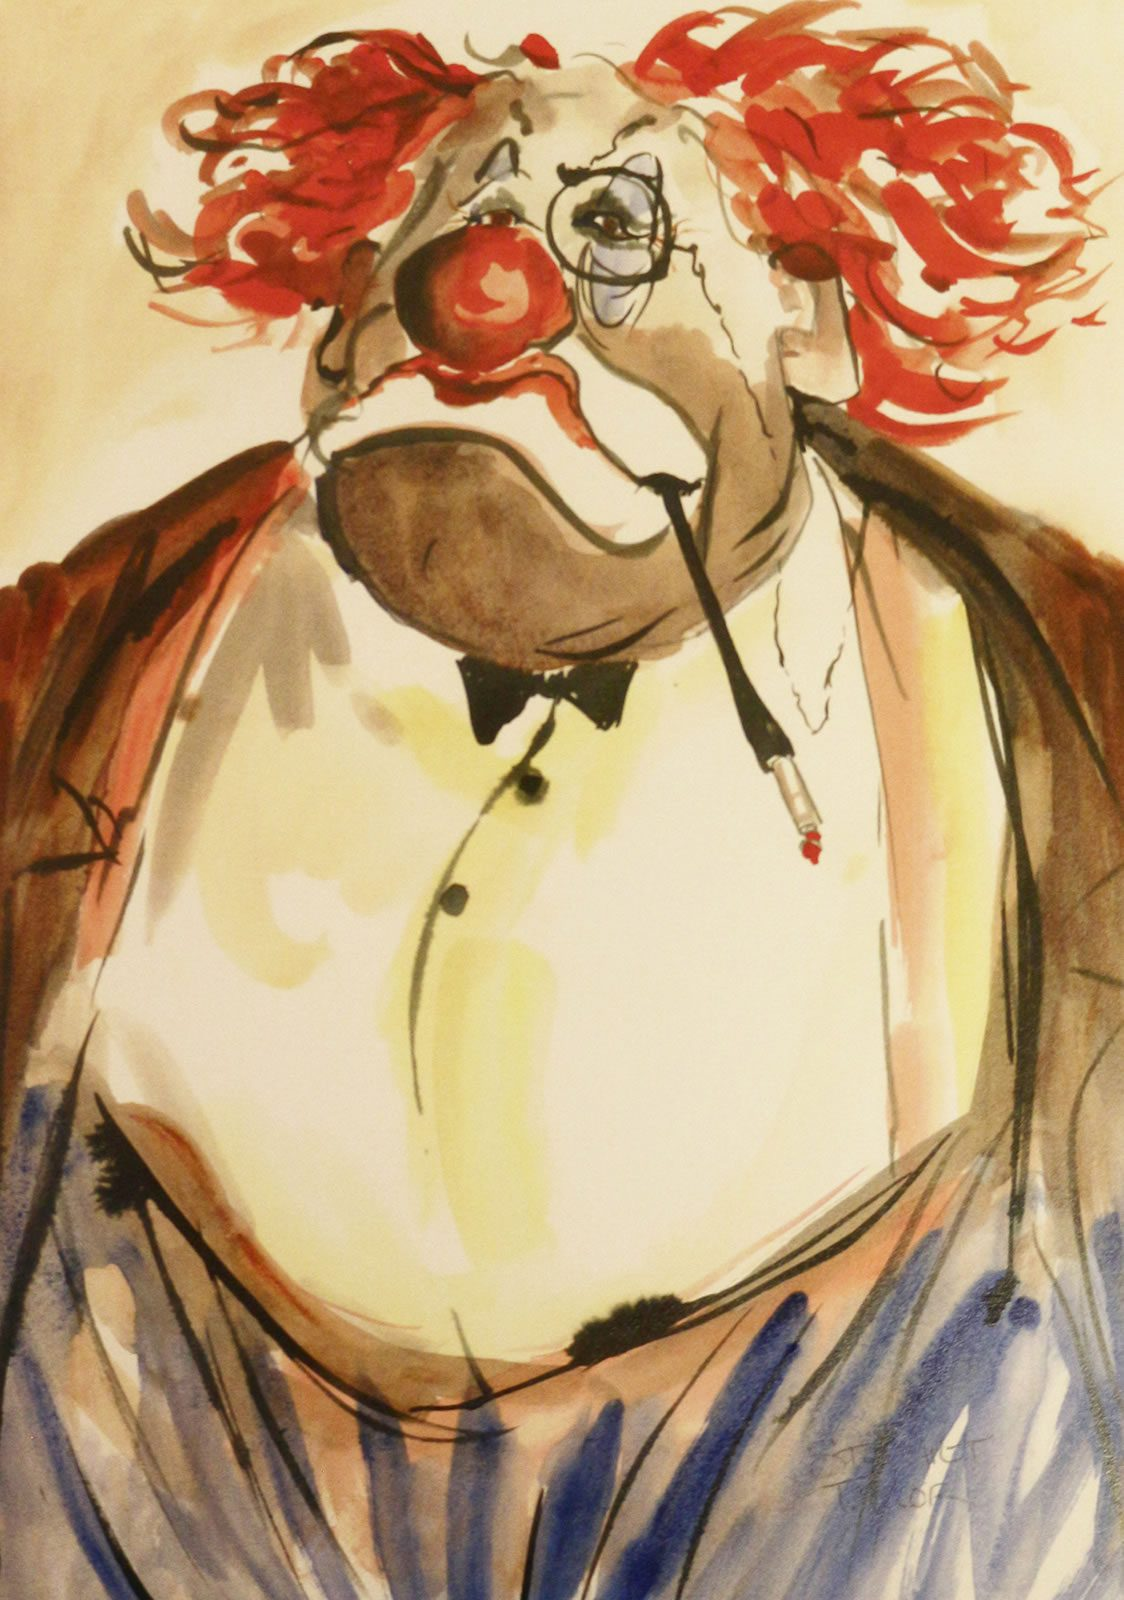 Humourous watercolour and ink study of clown by Stewart Taylor